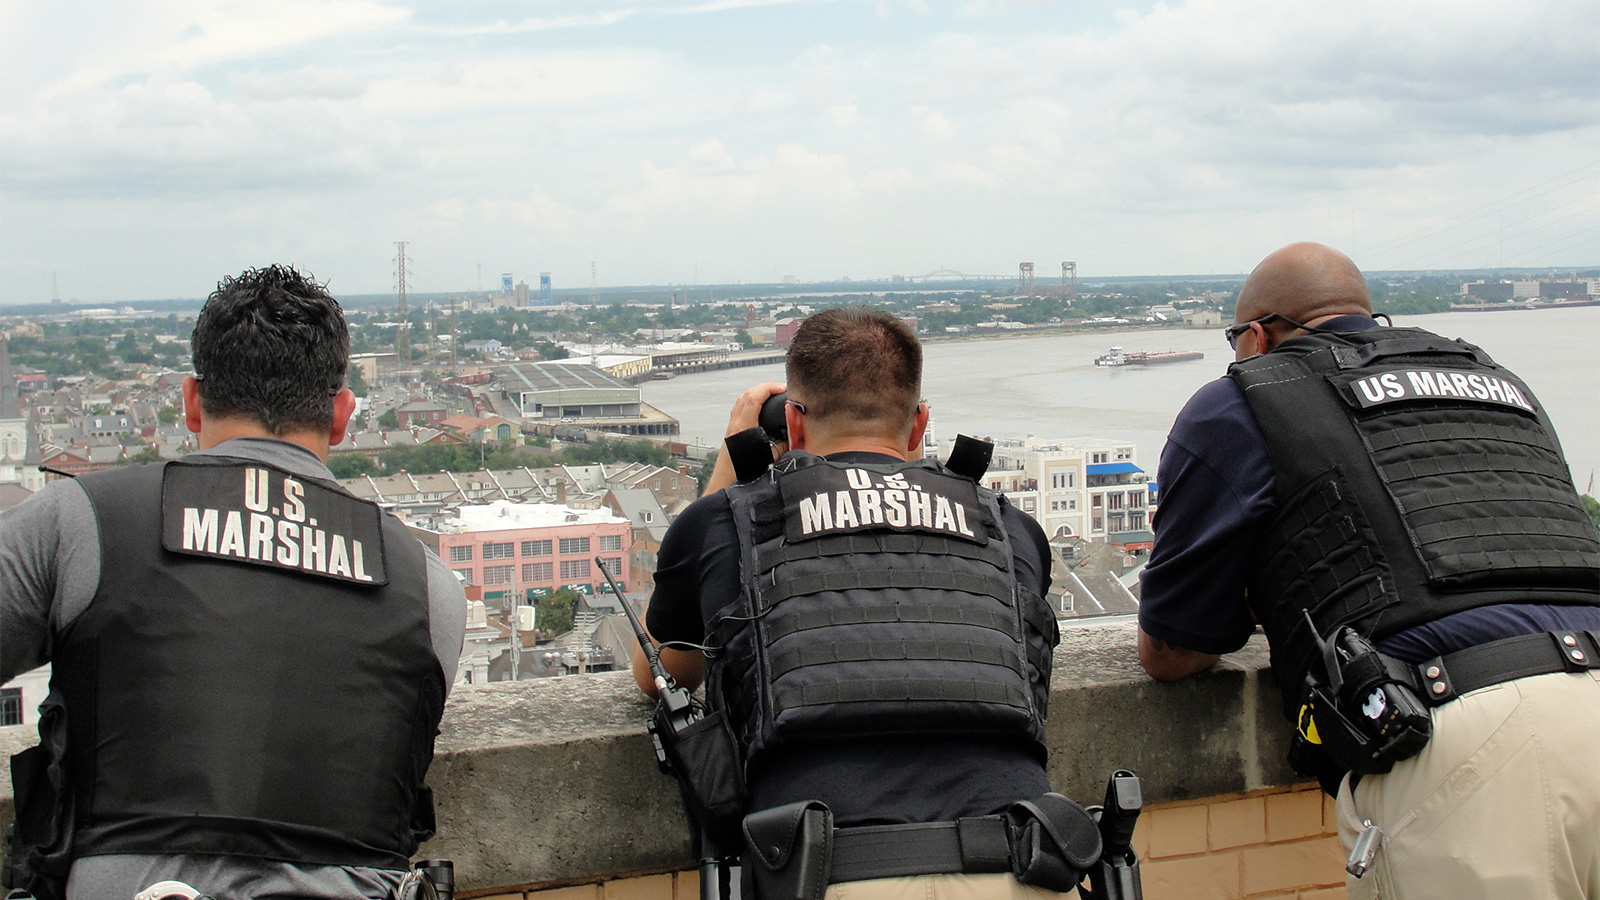 US Marshals Service has manpower shortage as it faces rising threats against judges, report says